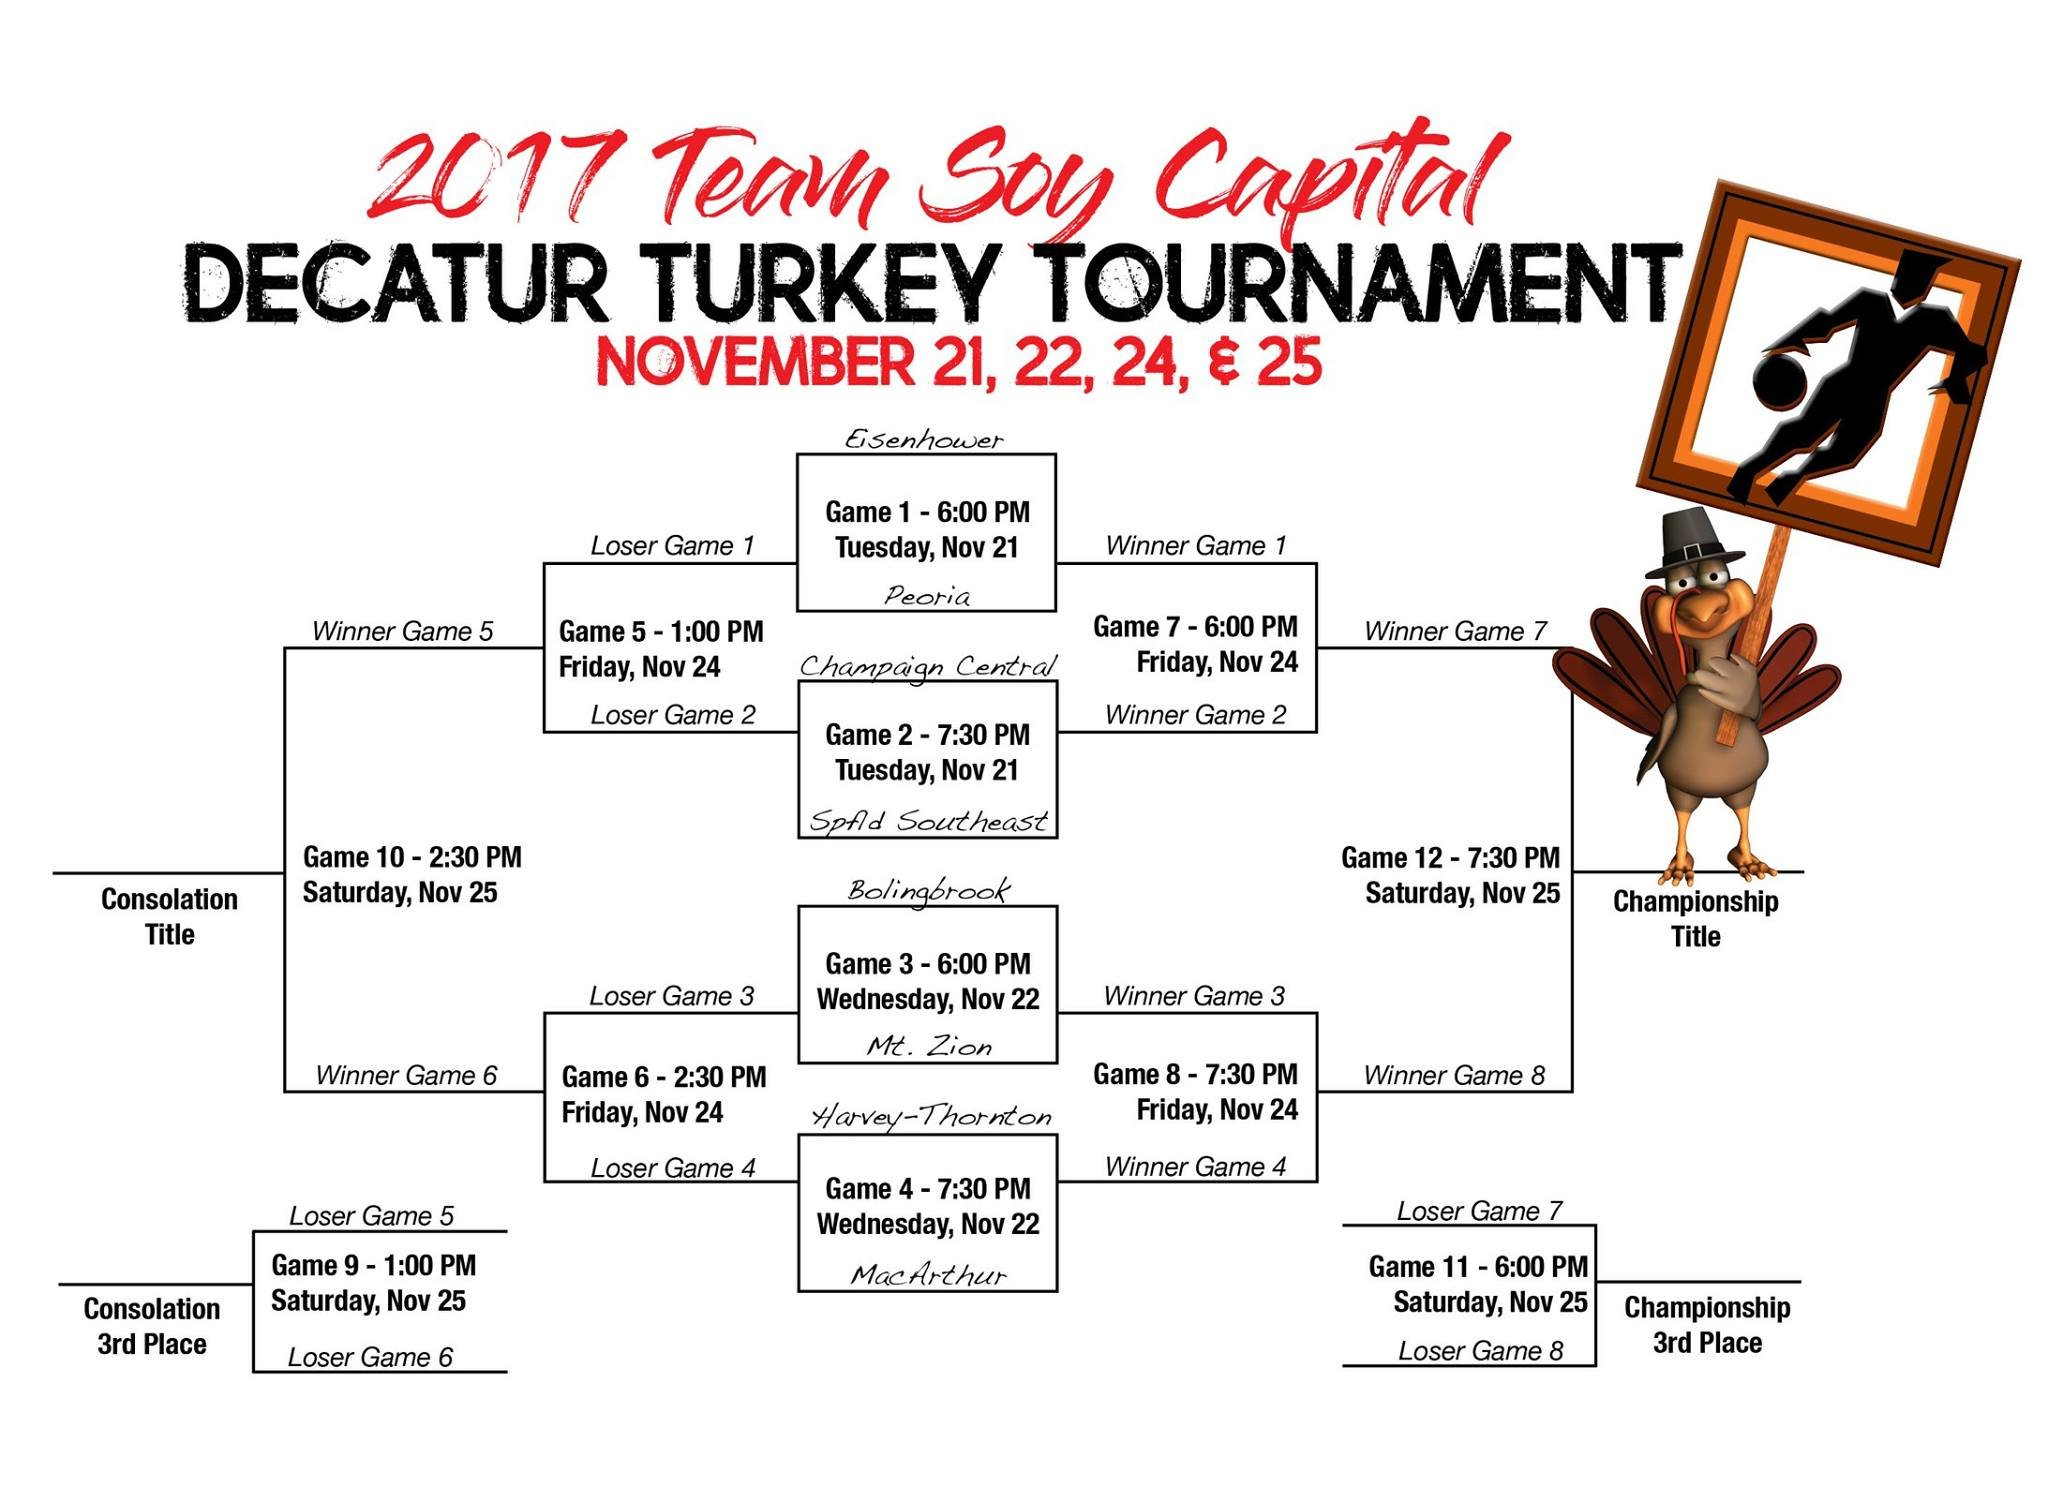 2017 Decatur Turkey Tournament Schedule